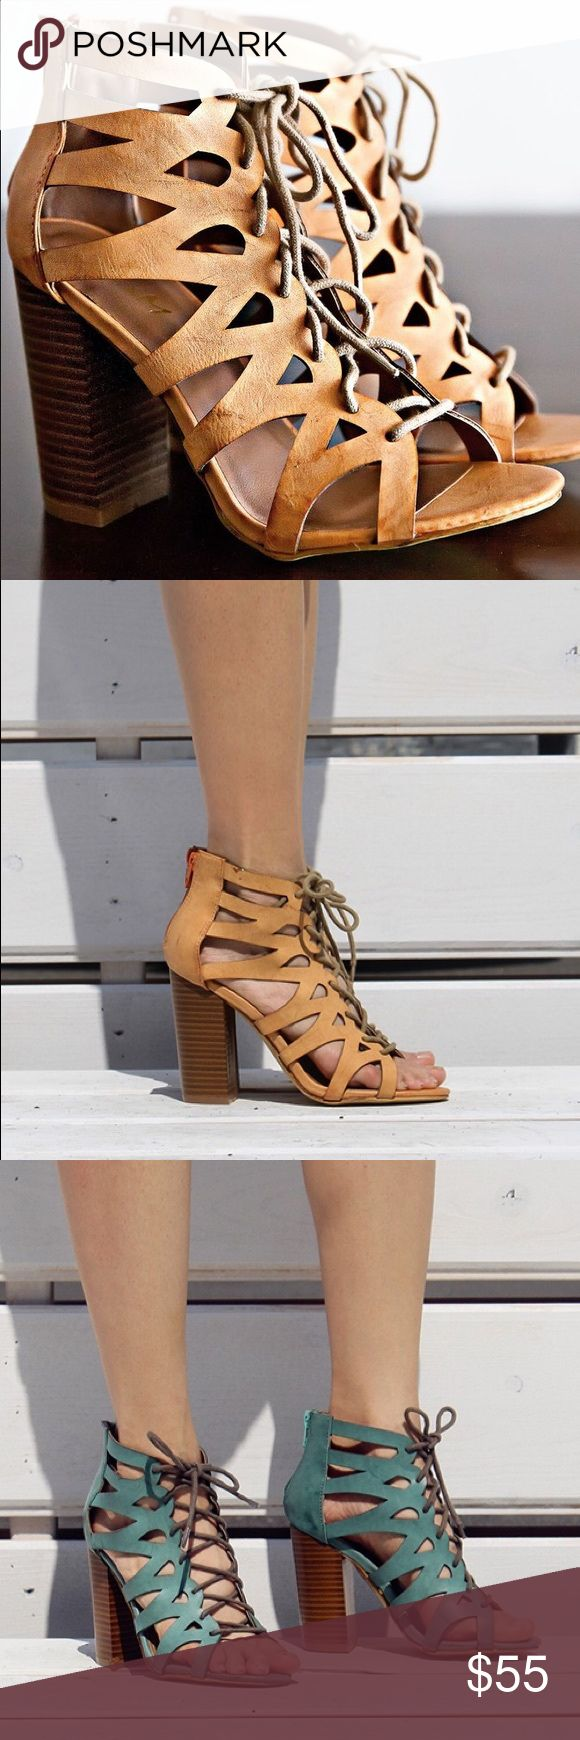 SALE Ladies high top lace up chunky heels sandals 🎉SALE THIS WEEKEND ONLY🎉Summer is here! Walk in style with this stylish sandal, super comfy, hot color, brand new in box, man made material, 3-4 inches hells, true to size. Available in torques and and rose colors. NO TRADES shoeroom21 boutique Shoes Heels